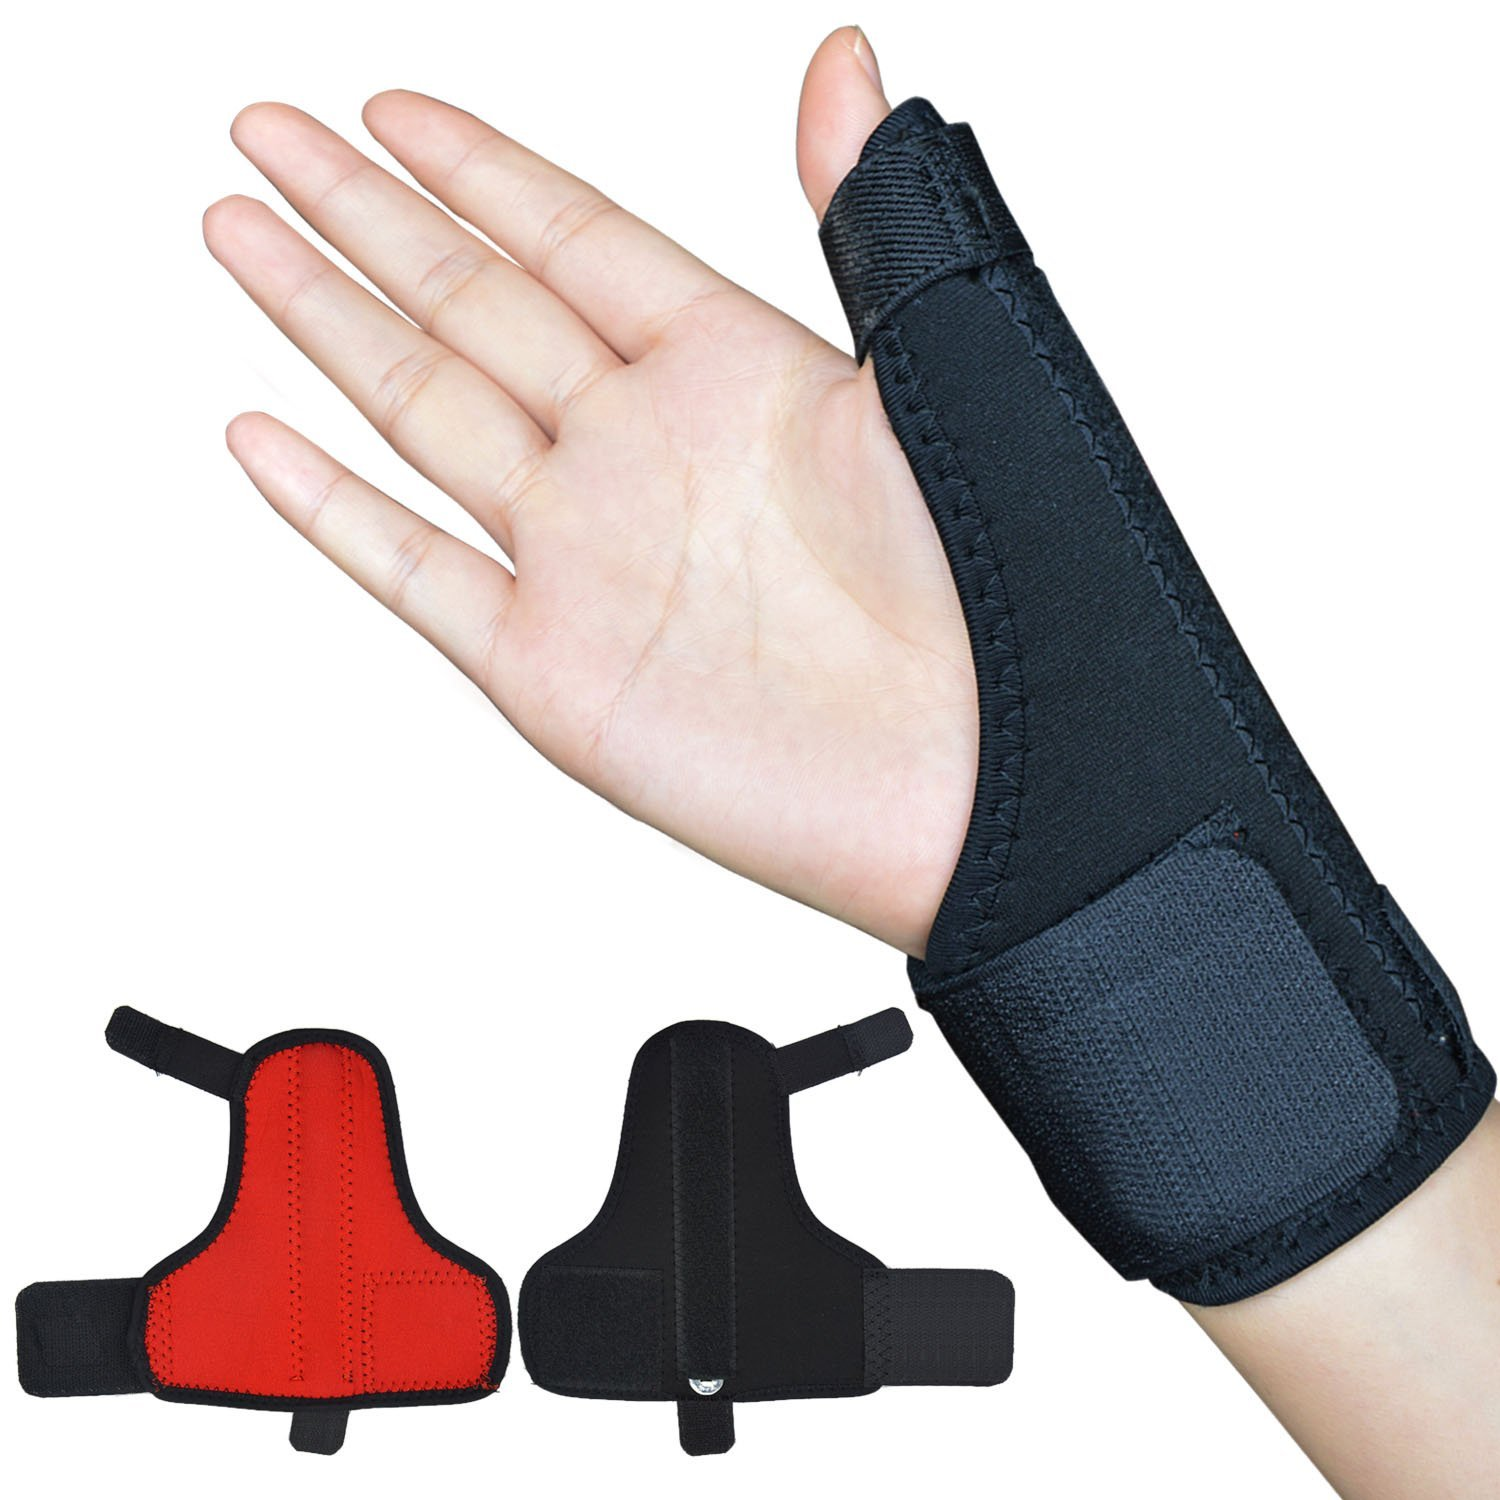 Beyoung(TM) Adjustable Thumb Brace Stabilizer Support Brace Carpal Tunnel Wrist Splint with Thumb Stabilizer - One Size Fits Most (2)